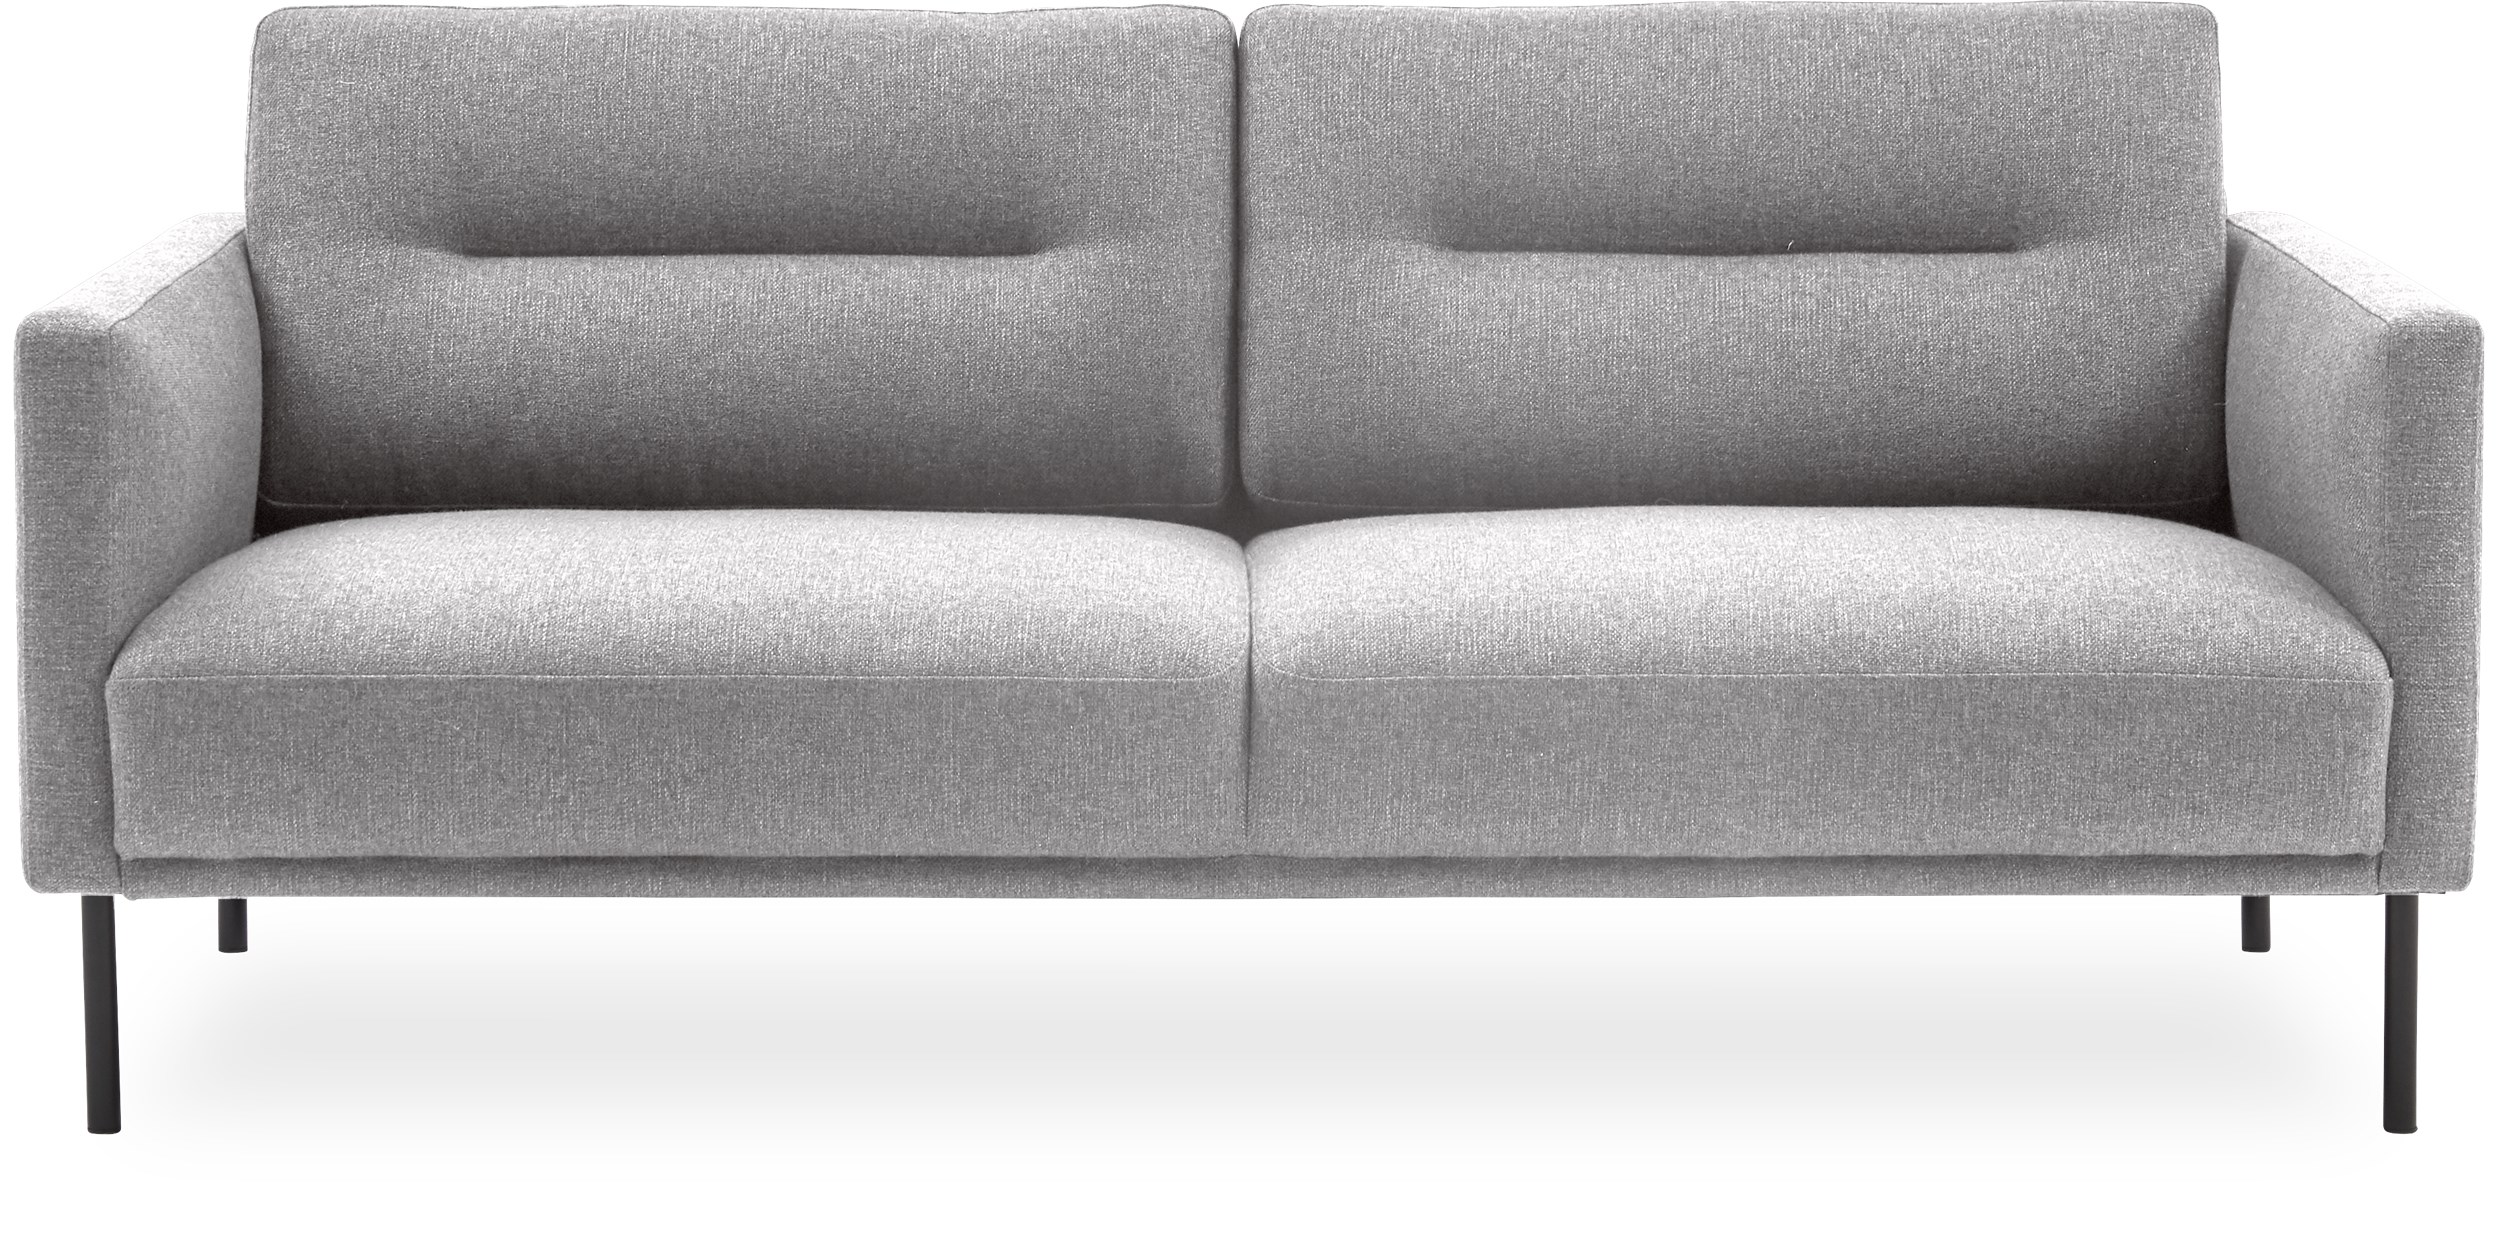 Larvik 2½ pers. Sofa - Hampton 372 Light grey stof og ben i sortlakeret metal